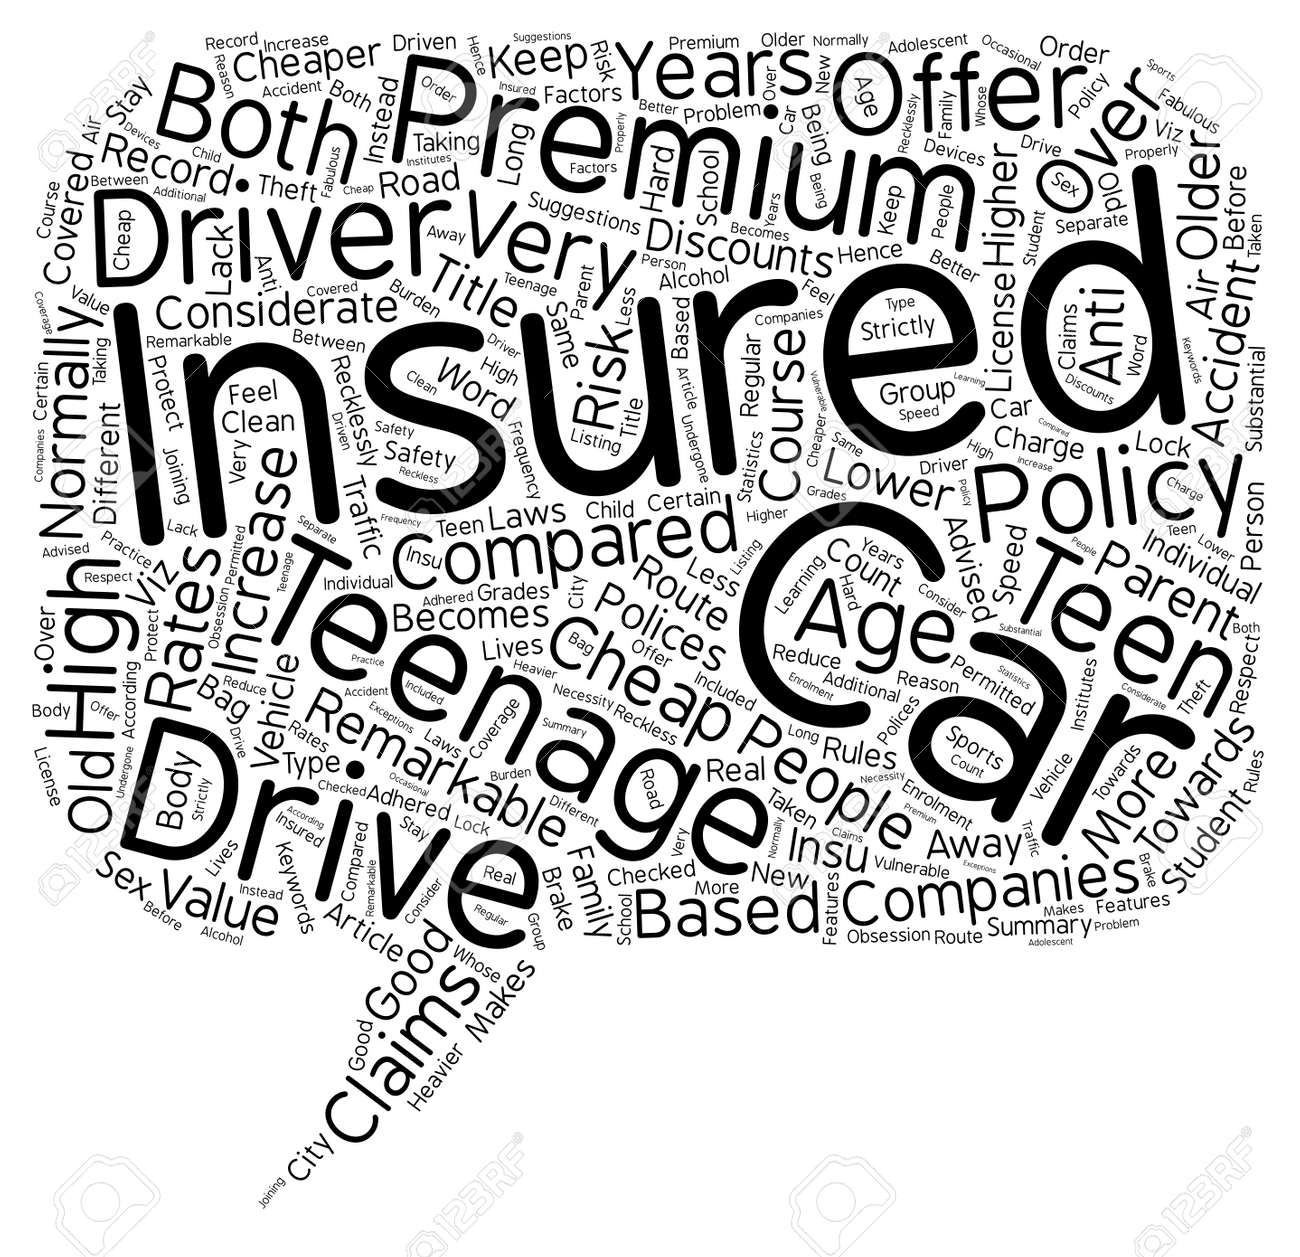 Cheap Insurance For Teens >> Car Insurance For Teens Is There A Cheaper Route Text Background